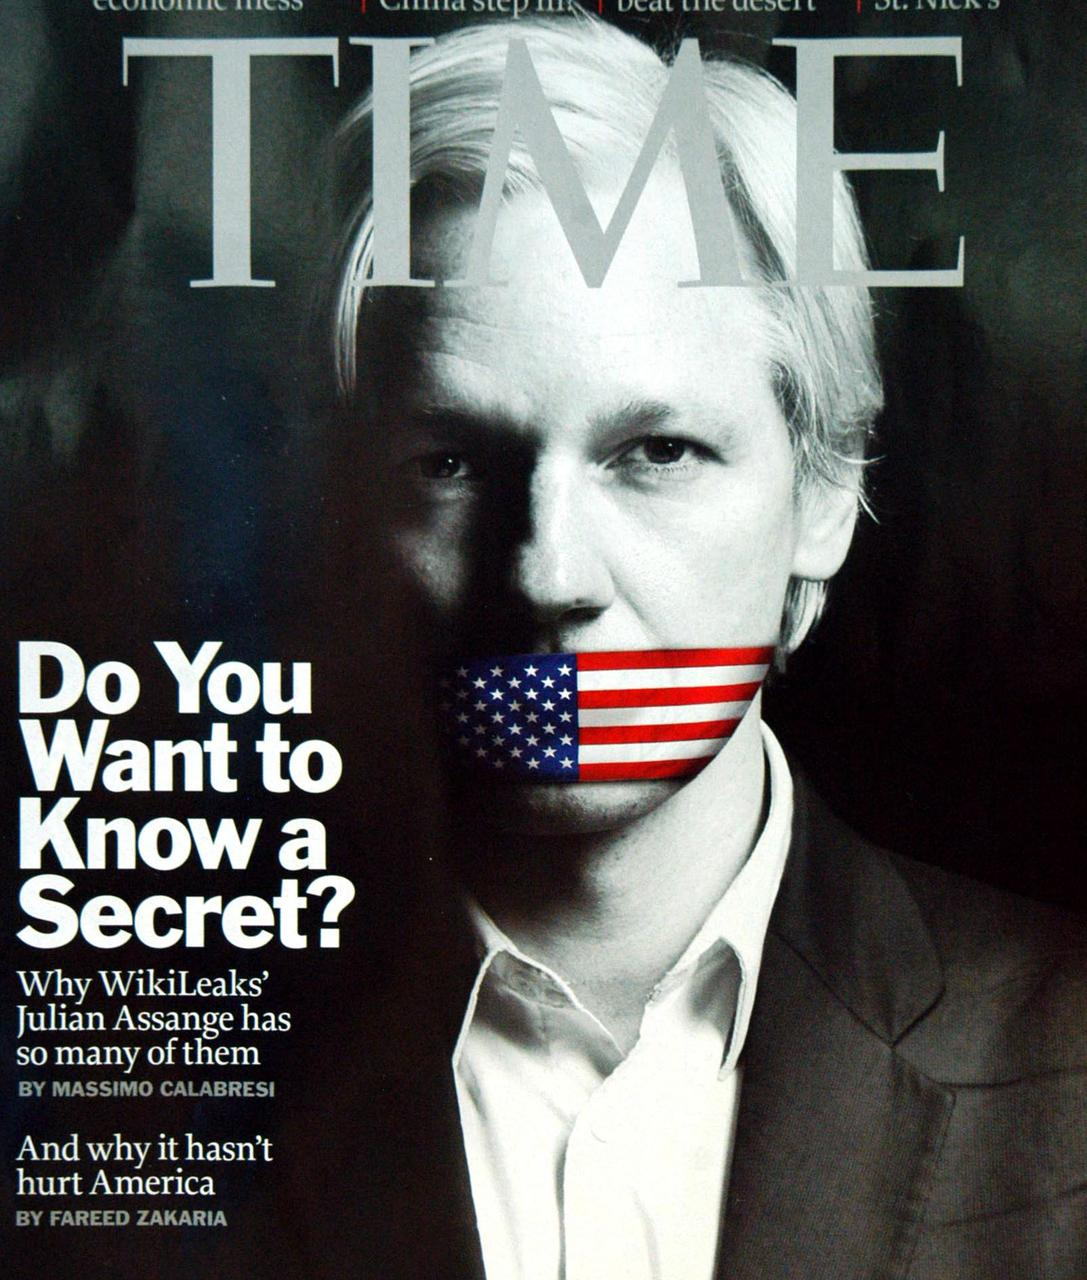 The Time Magazine cover in